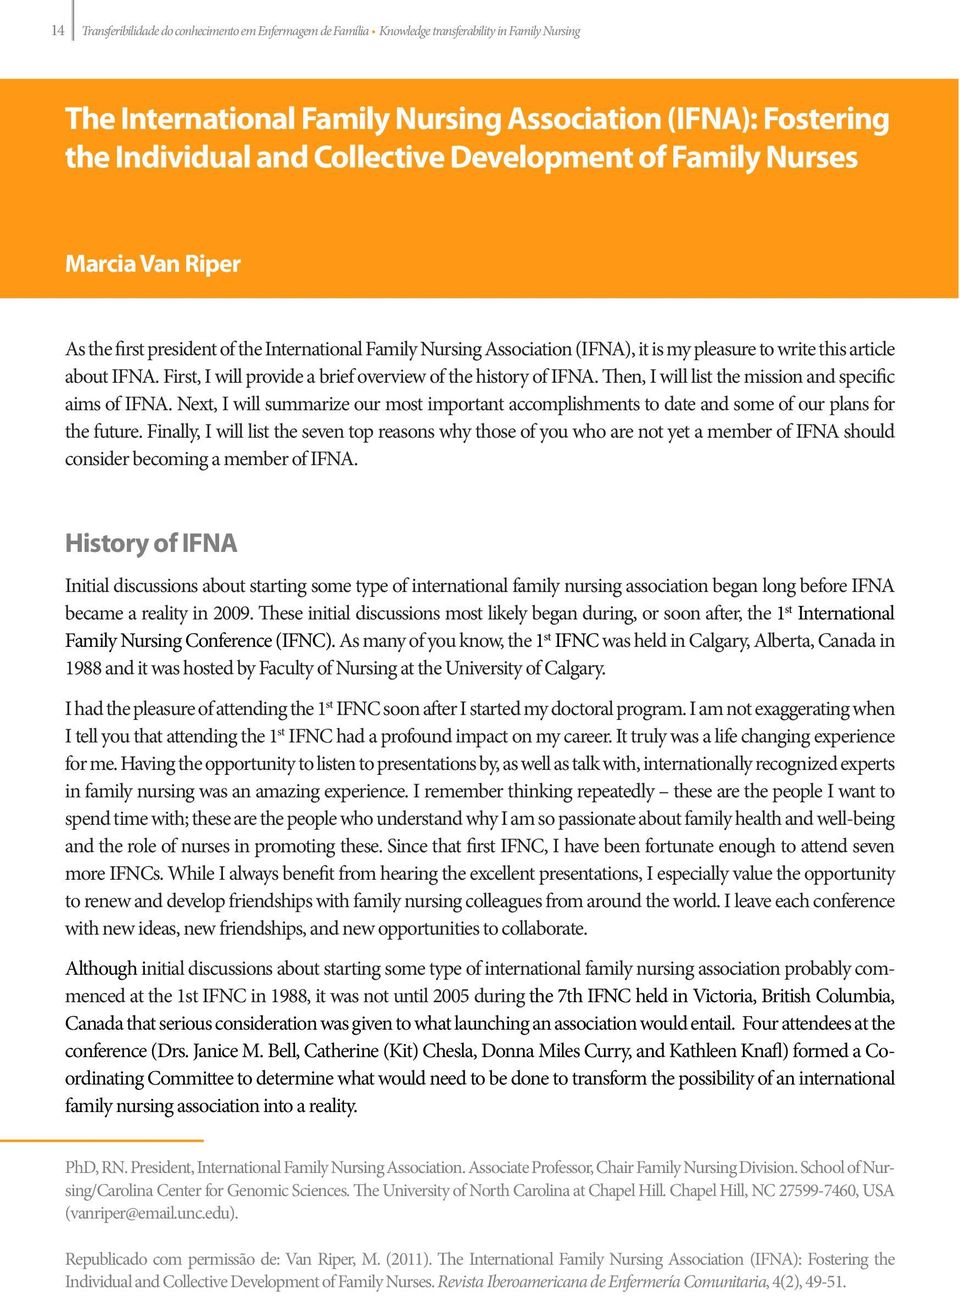 president of the International Family Nursing Association (IFNA), it is my pleasure to write this article about IFNA. First, I will provide a brief overview of the history of IFNA.